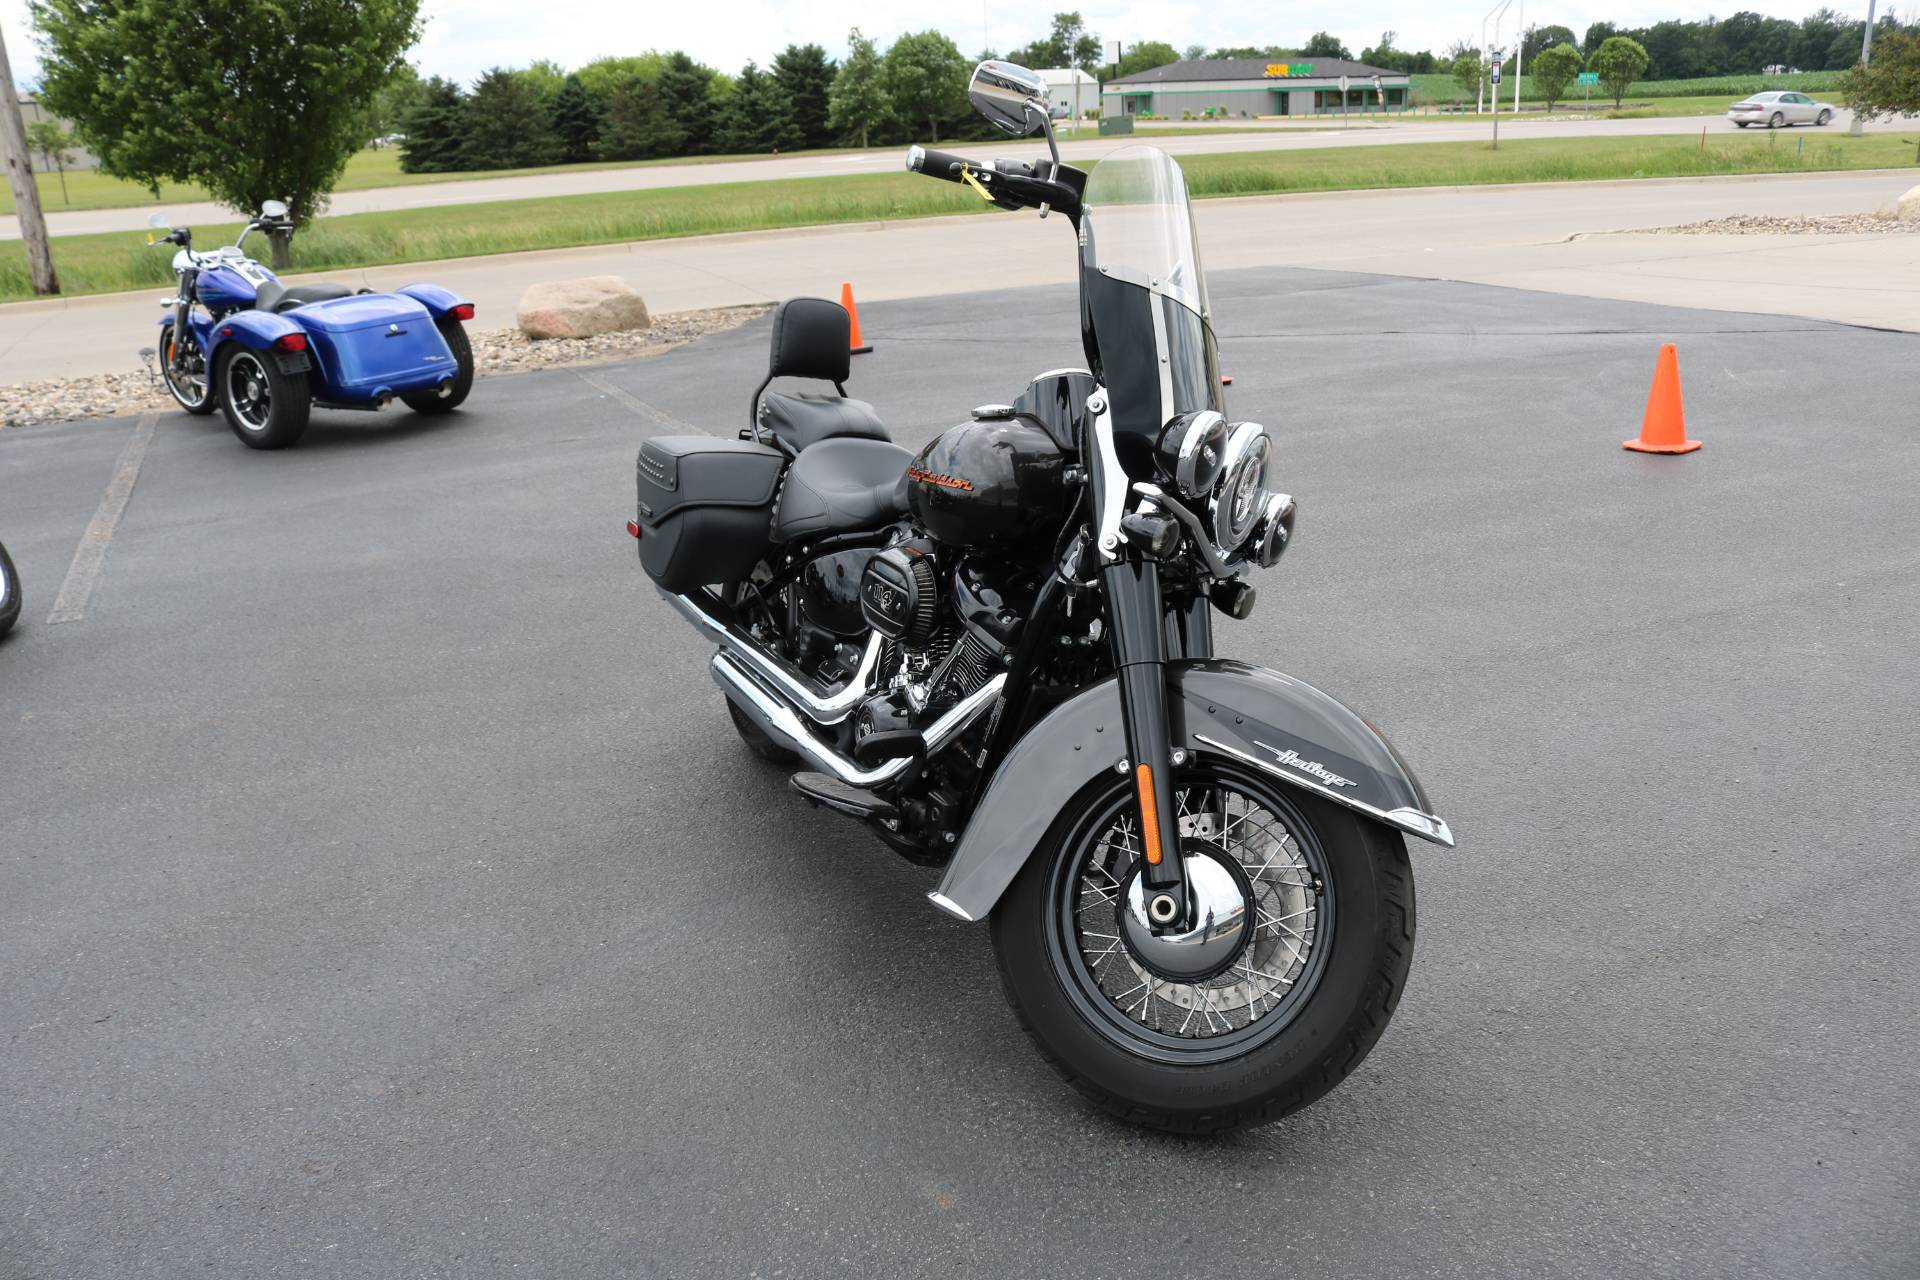 2019 Harley-Davidson Heritage Classic 114 in Carroll, Iowa - Photo 7